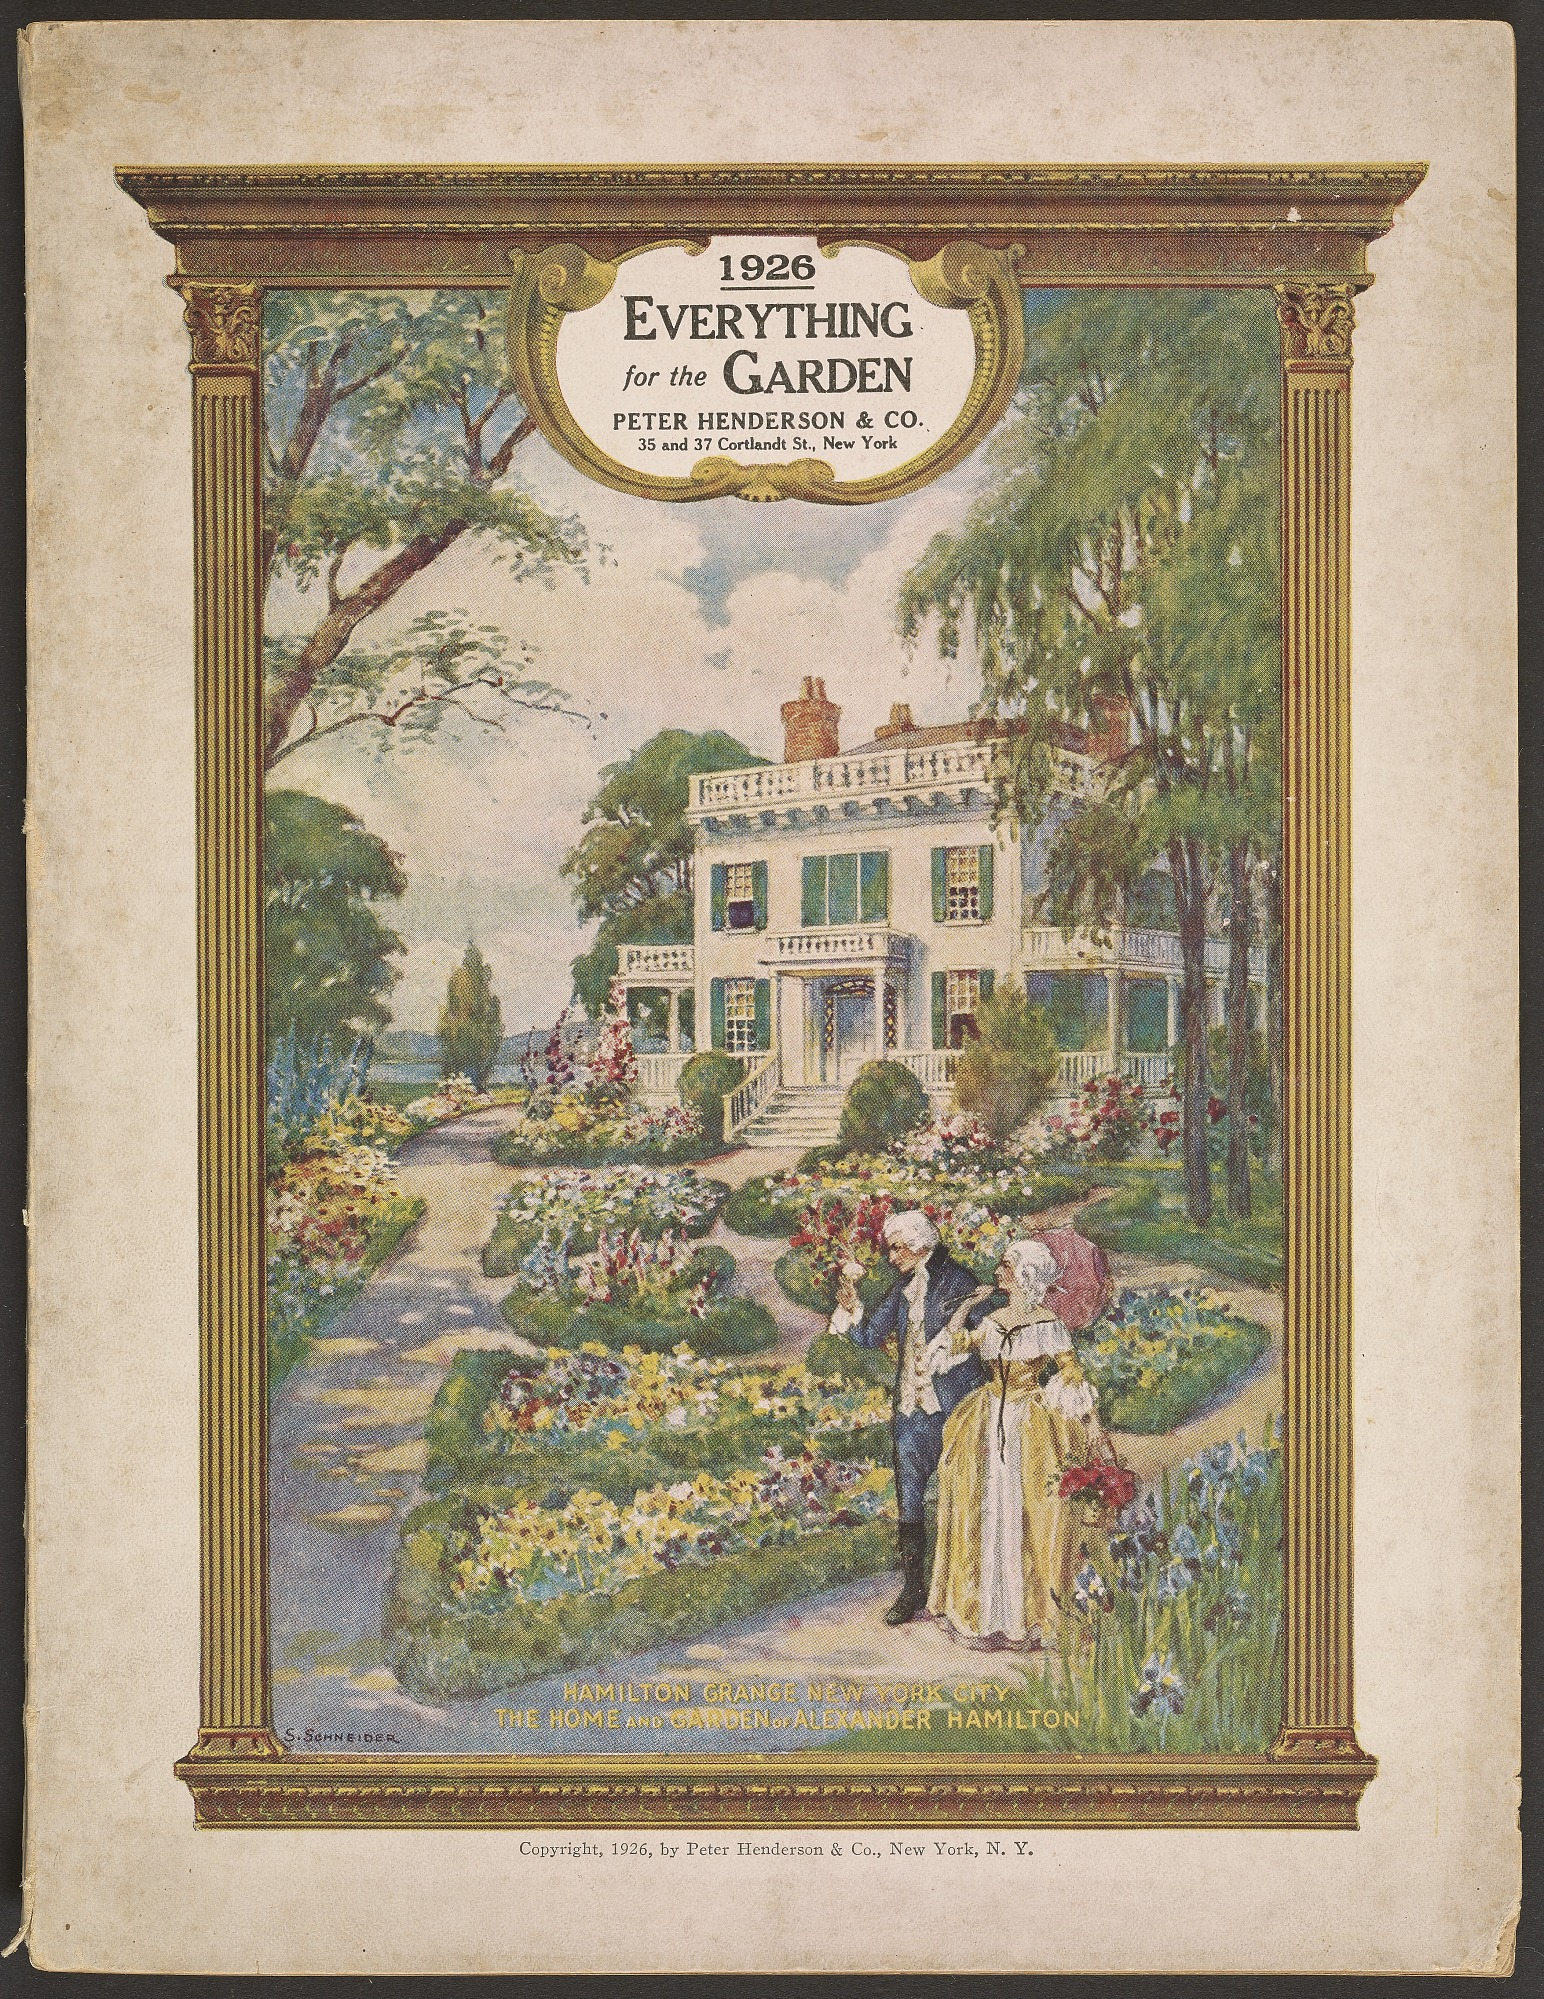 On the cover of this catalog, Hamilton Grange, the federal-style Harlem home of Founding Father Alexander Hamilton, has been embellished with lavish flower gardens